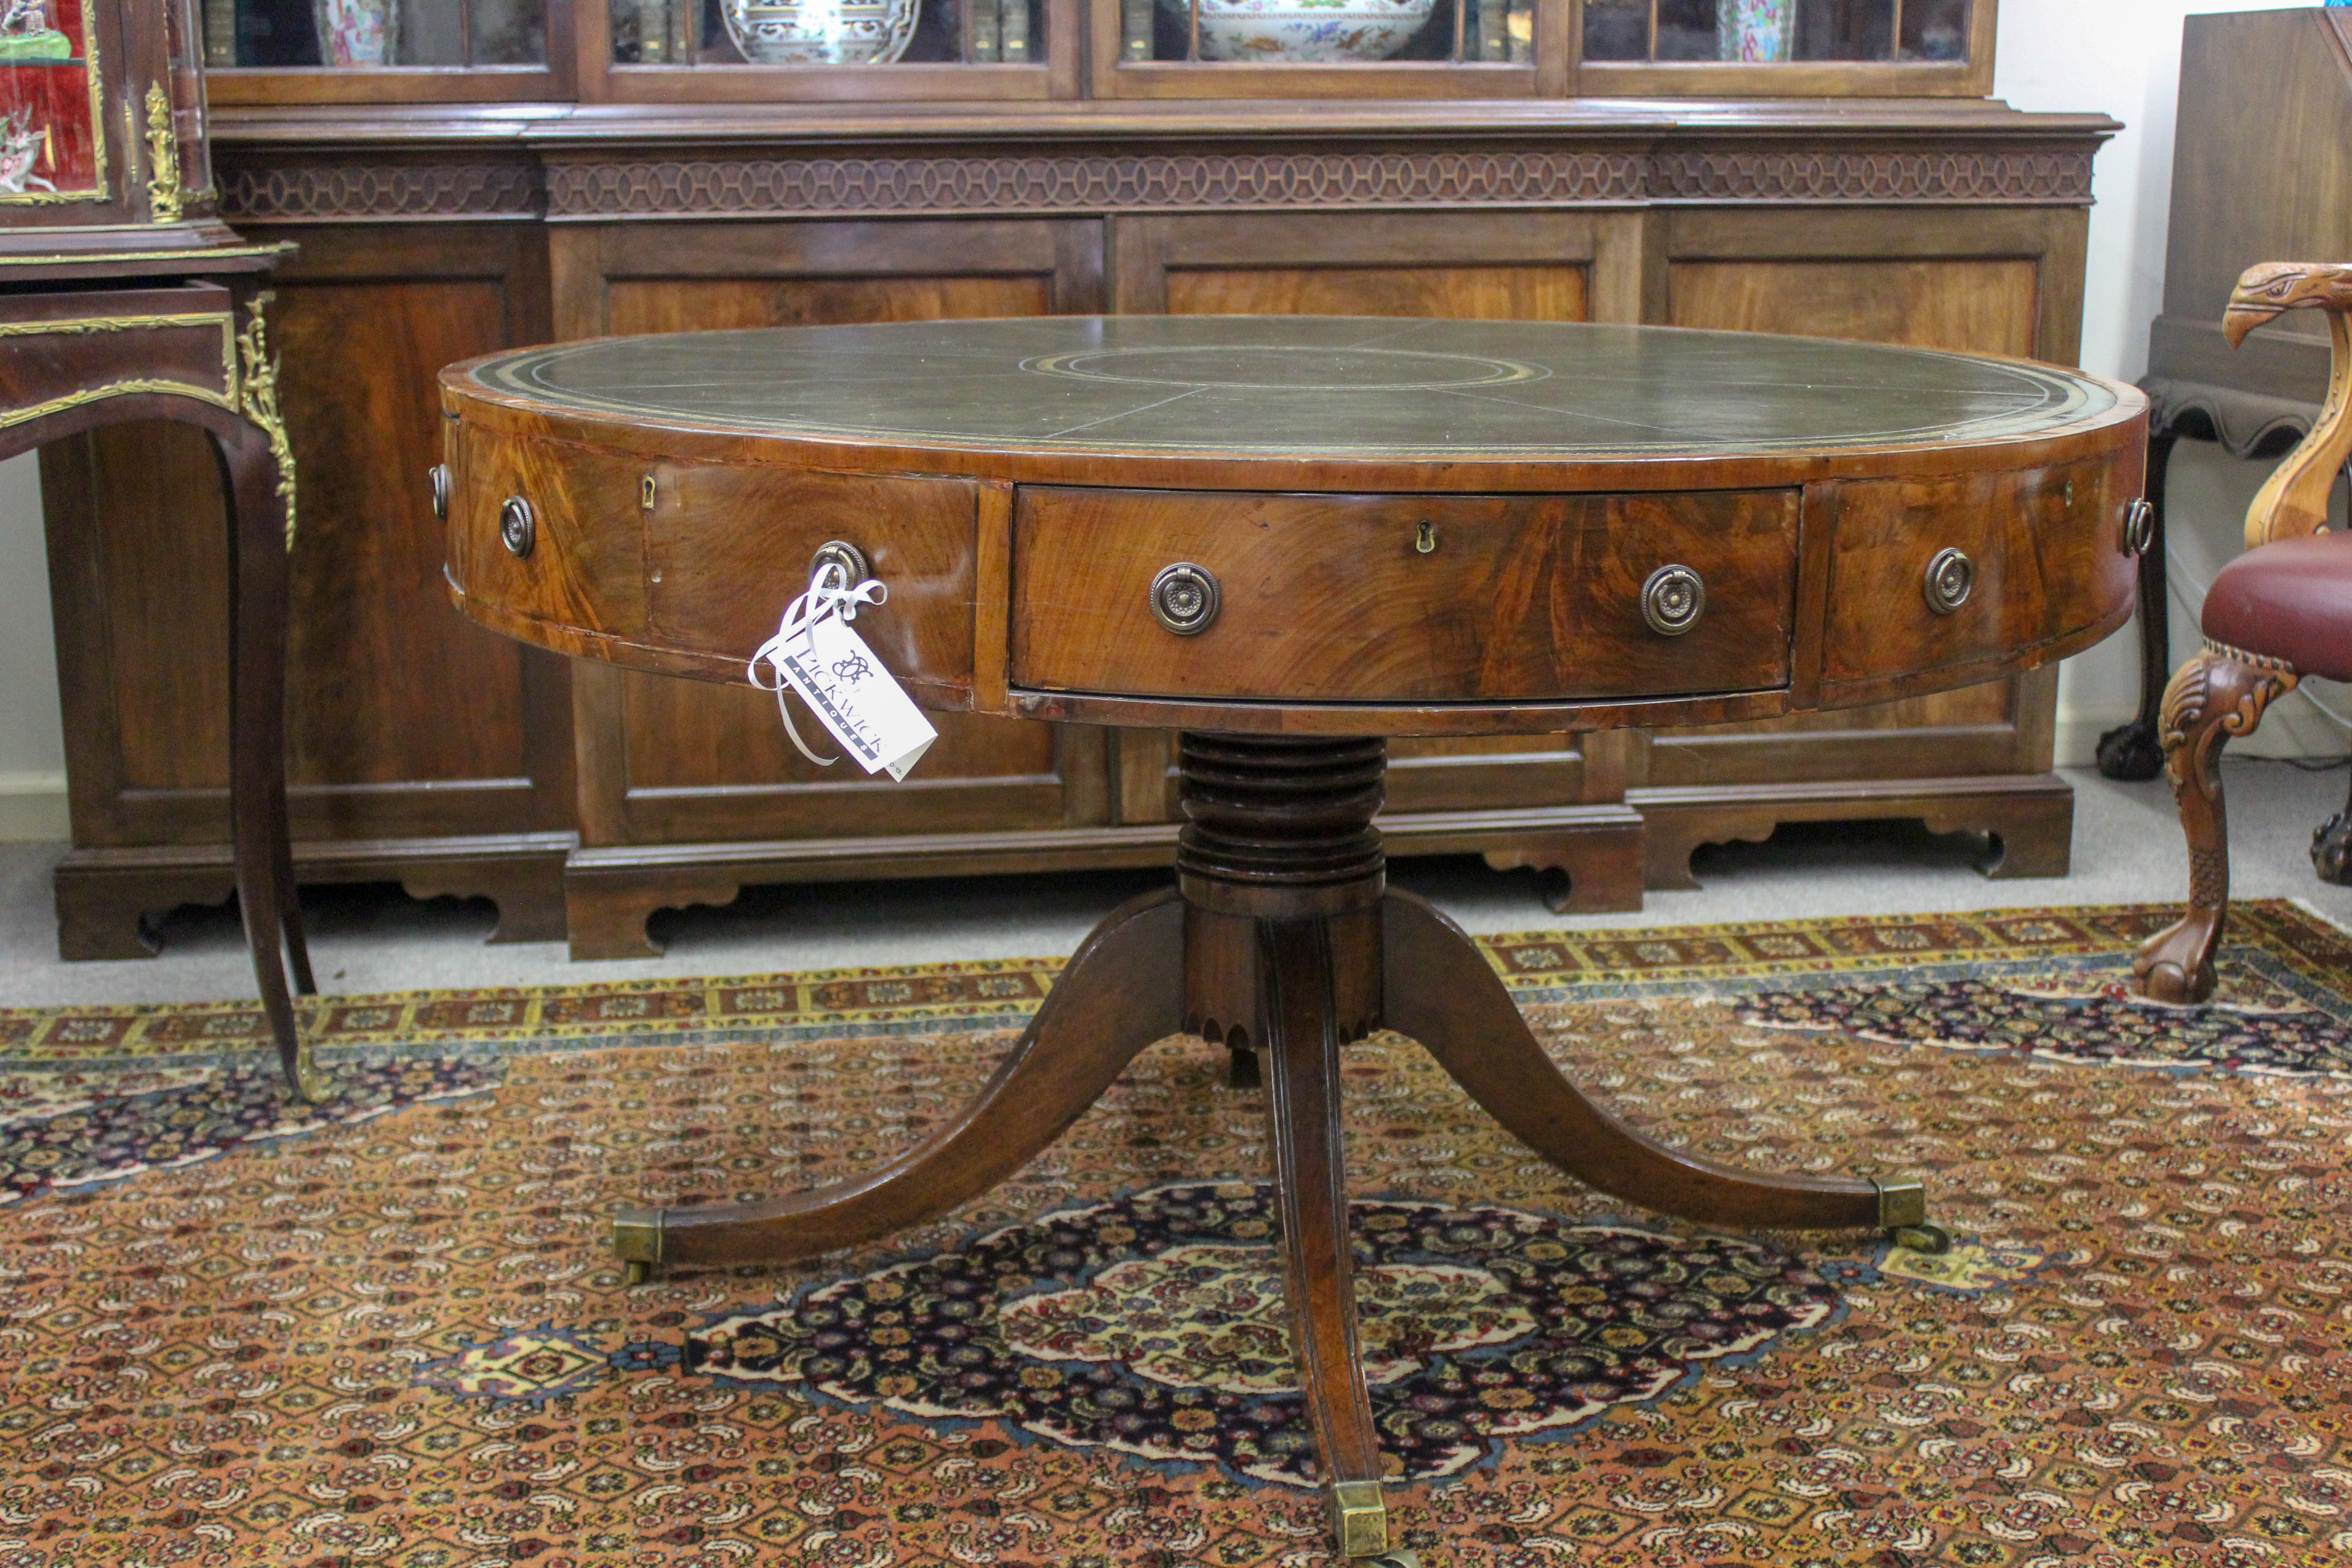 An English George III Inlaid Mahogany Drum Table